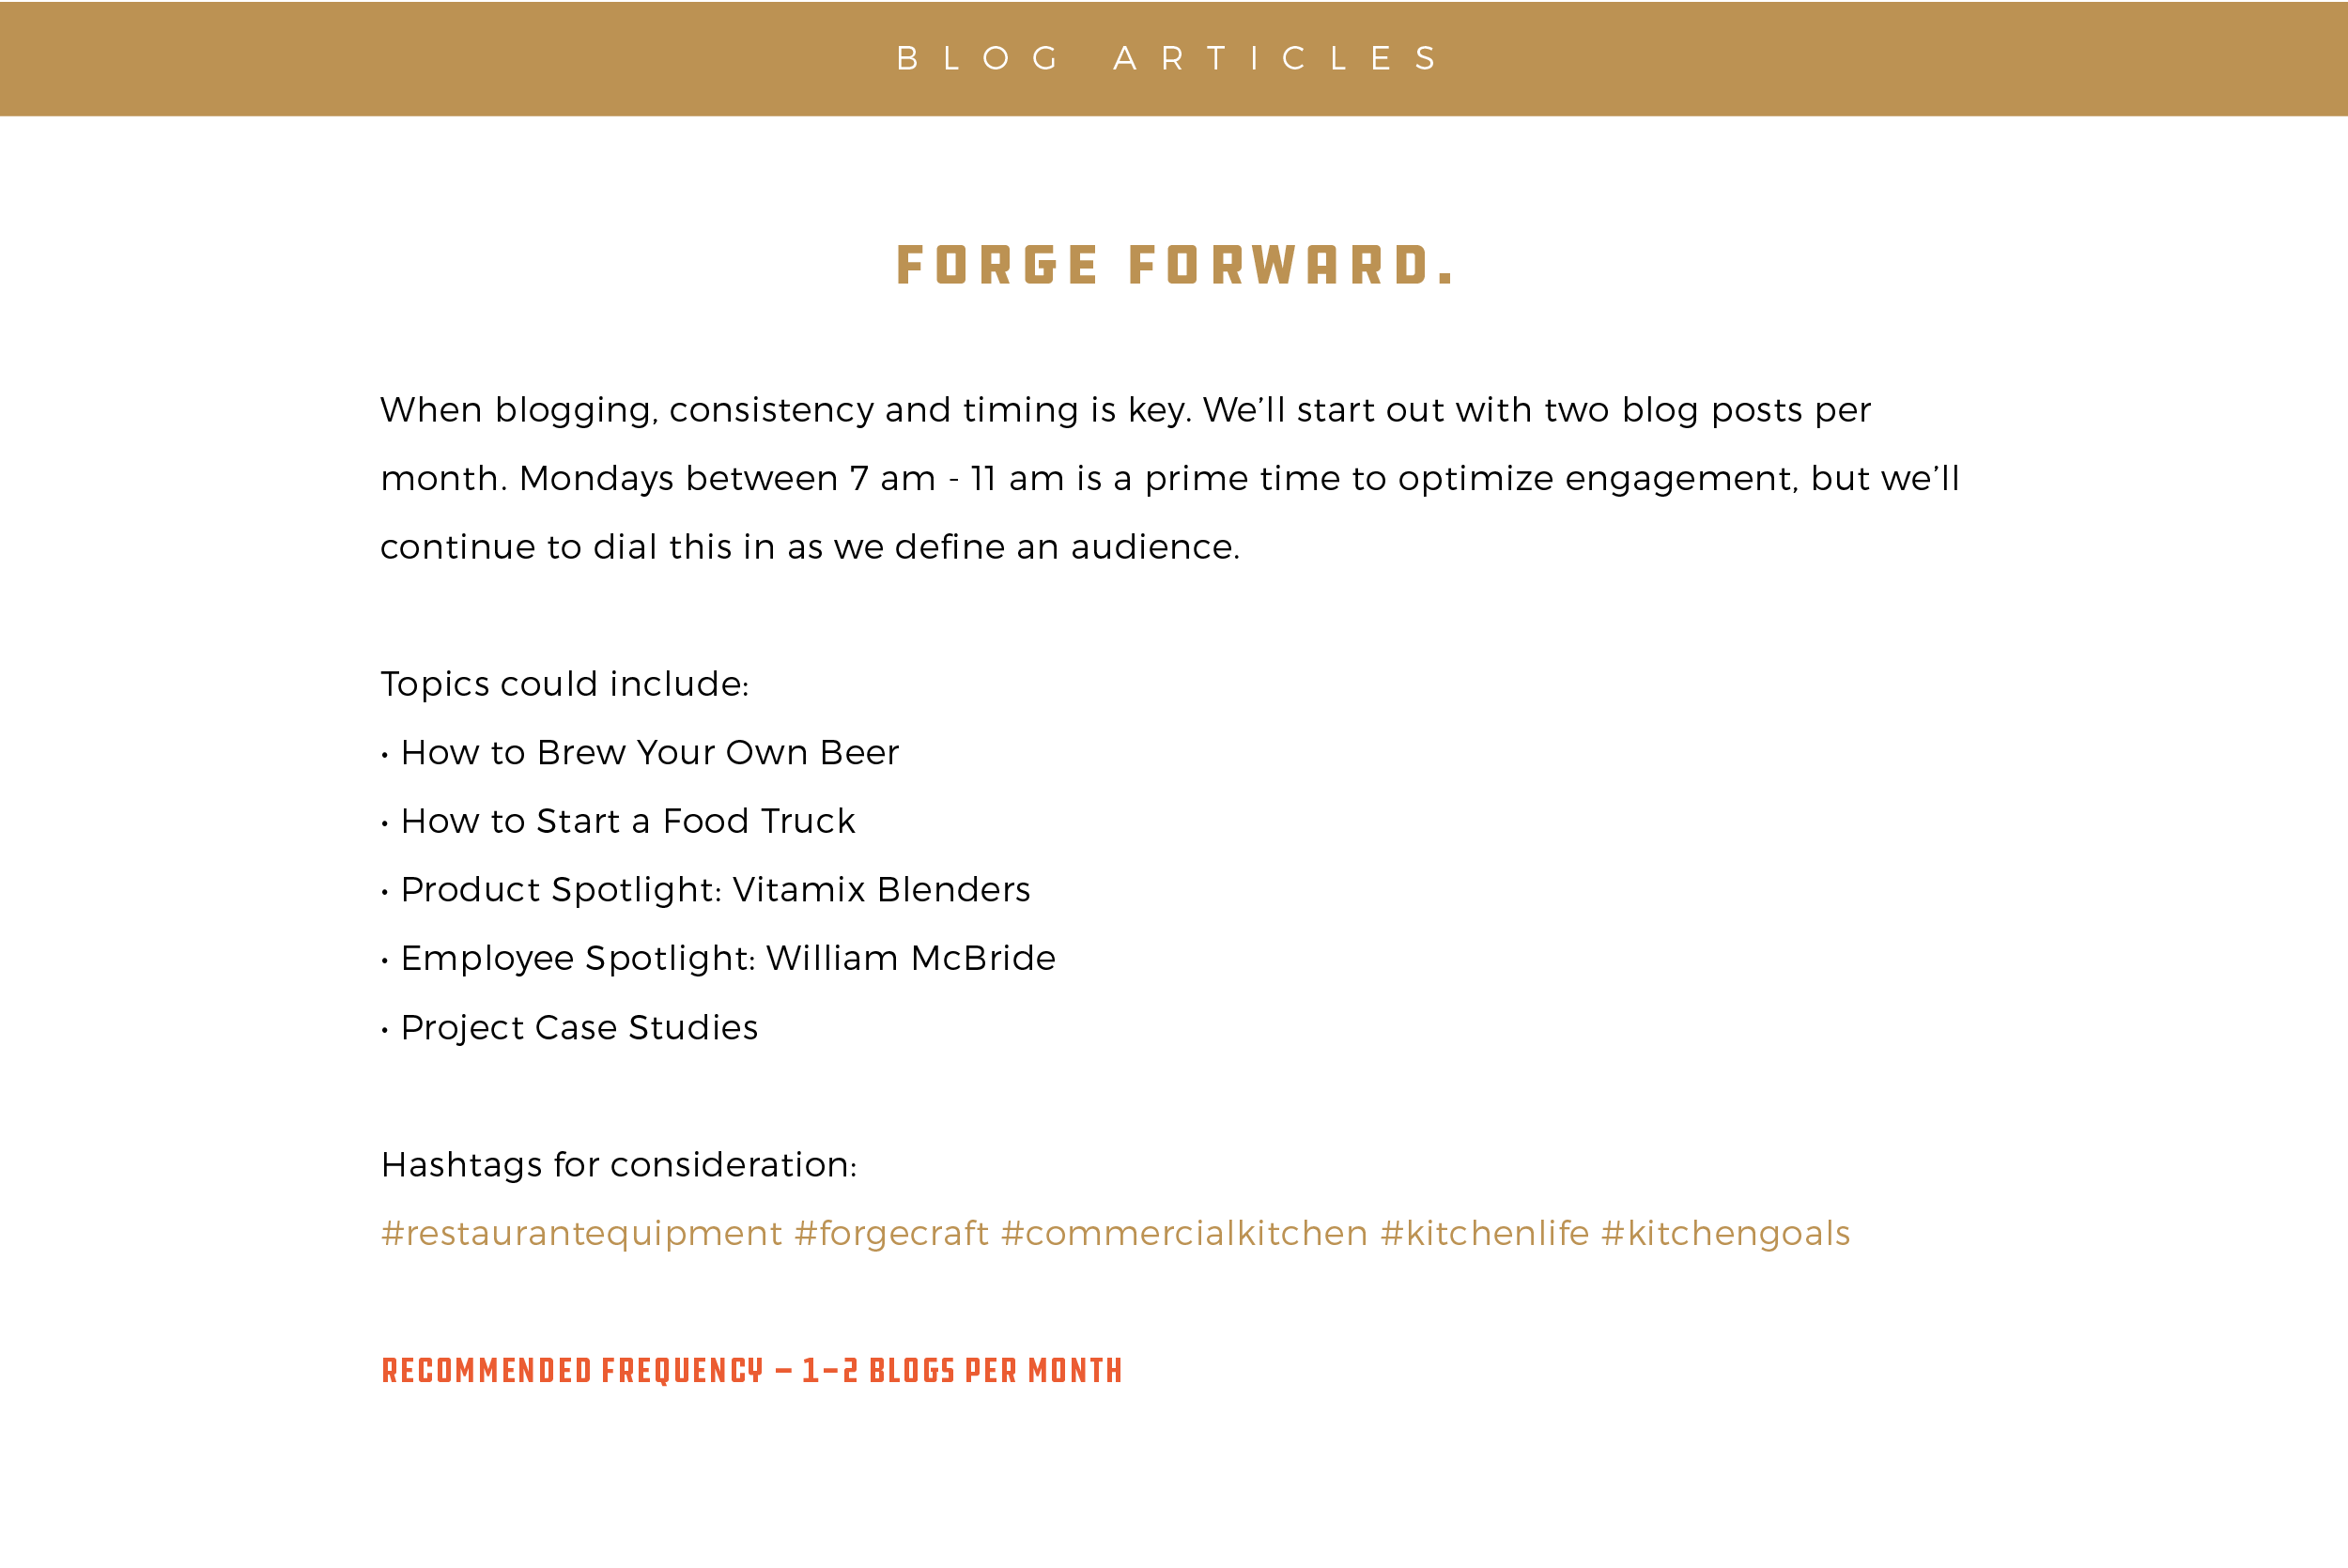 ForgeCraft-Content-Strategy-3-20-18-v1-05.png